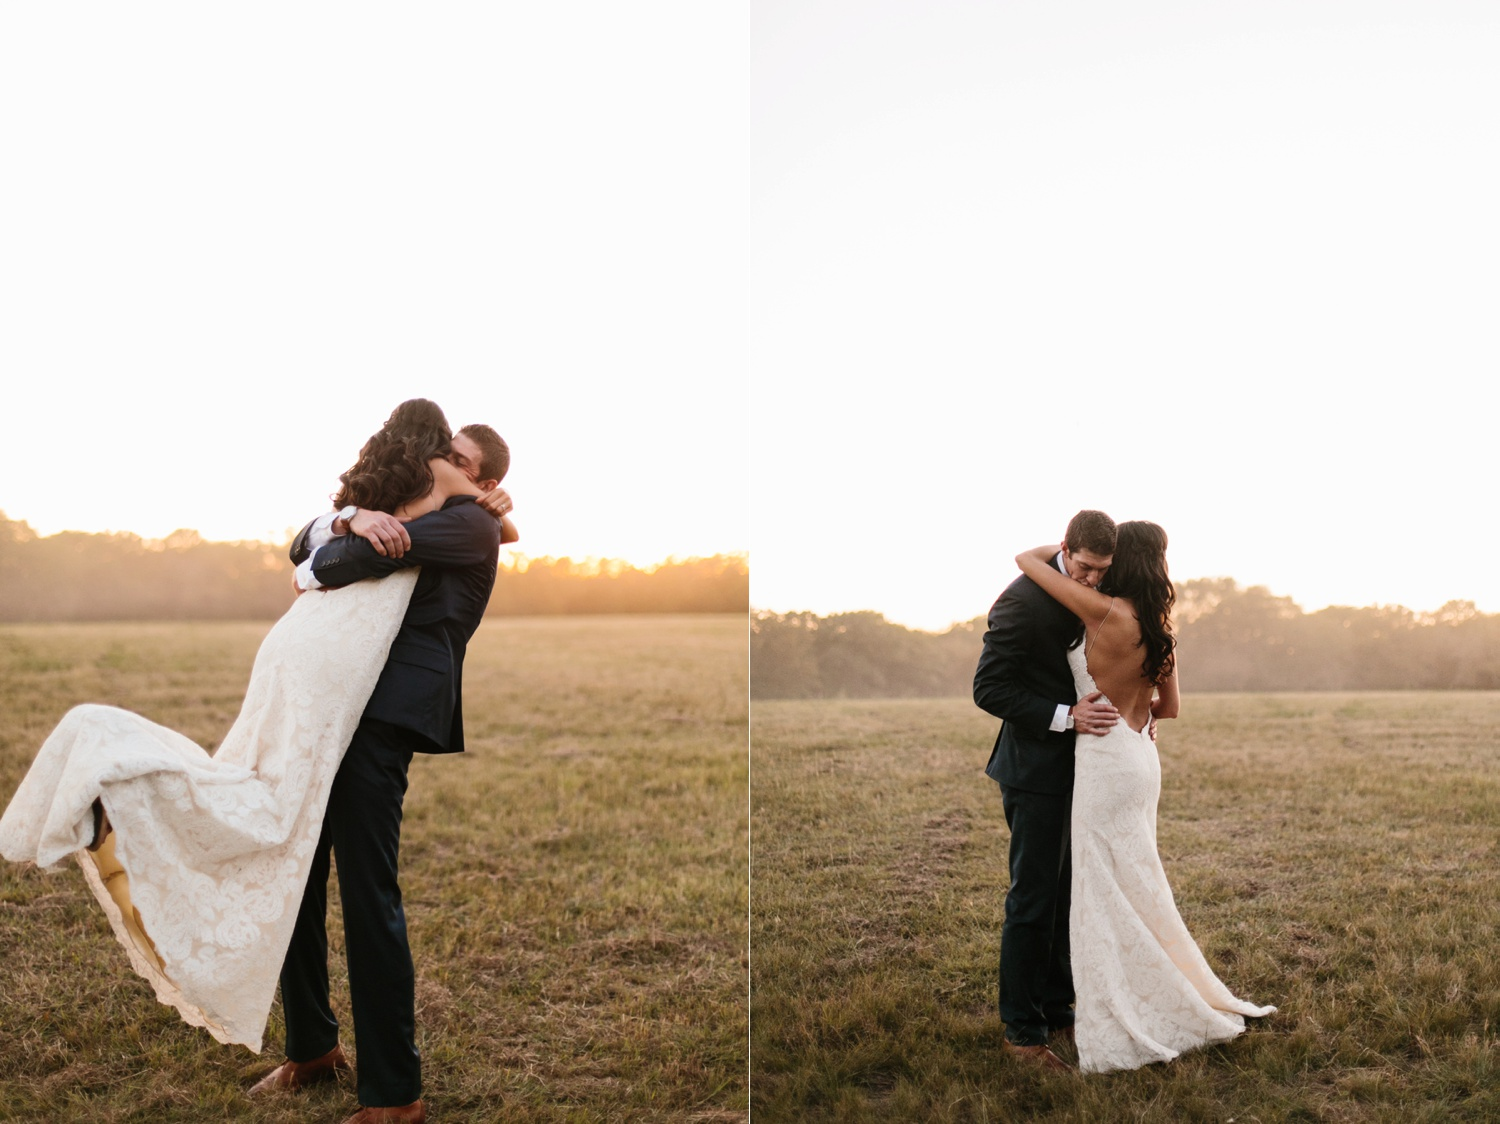 Erica + Henry | a bohemian inspired wedding at Chandlers Gardens in Salina, TX by North Texas Wedding Photographer Rachel Meagan Photography 118